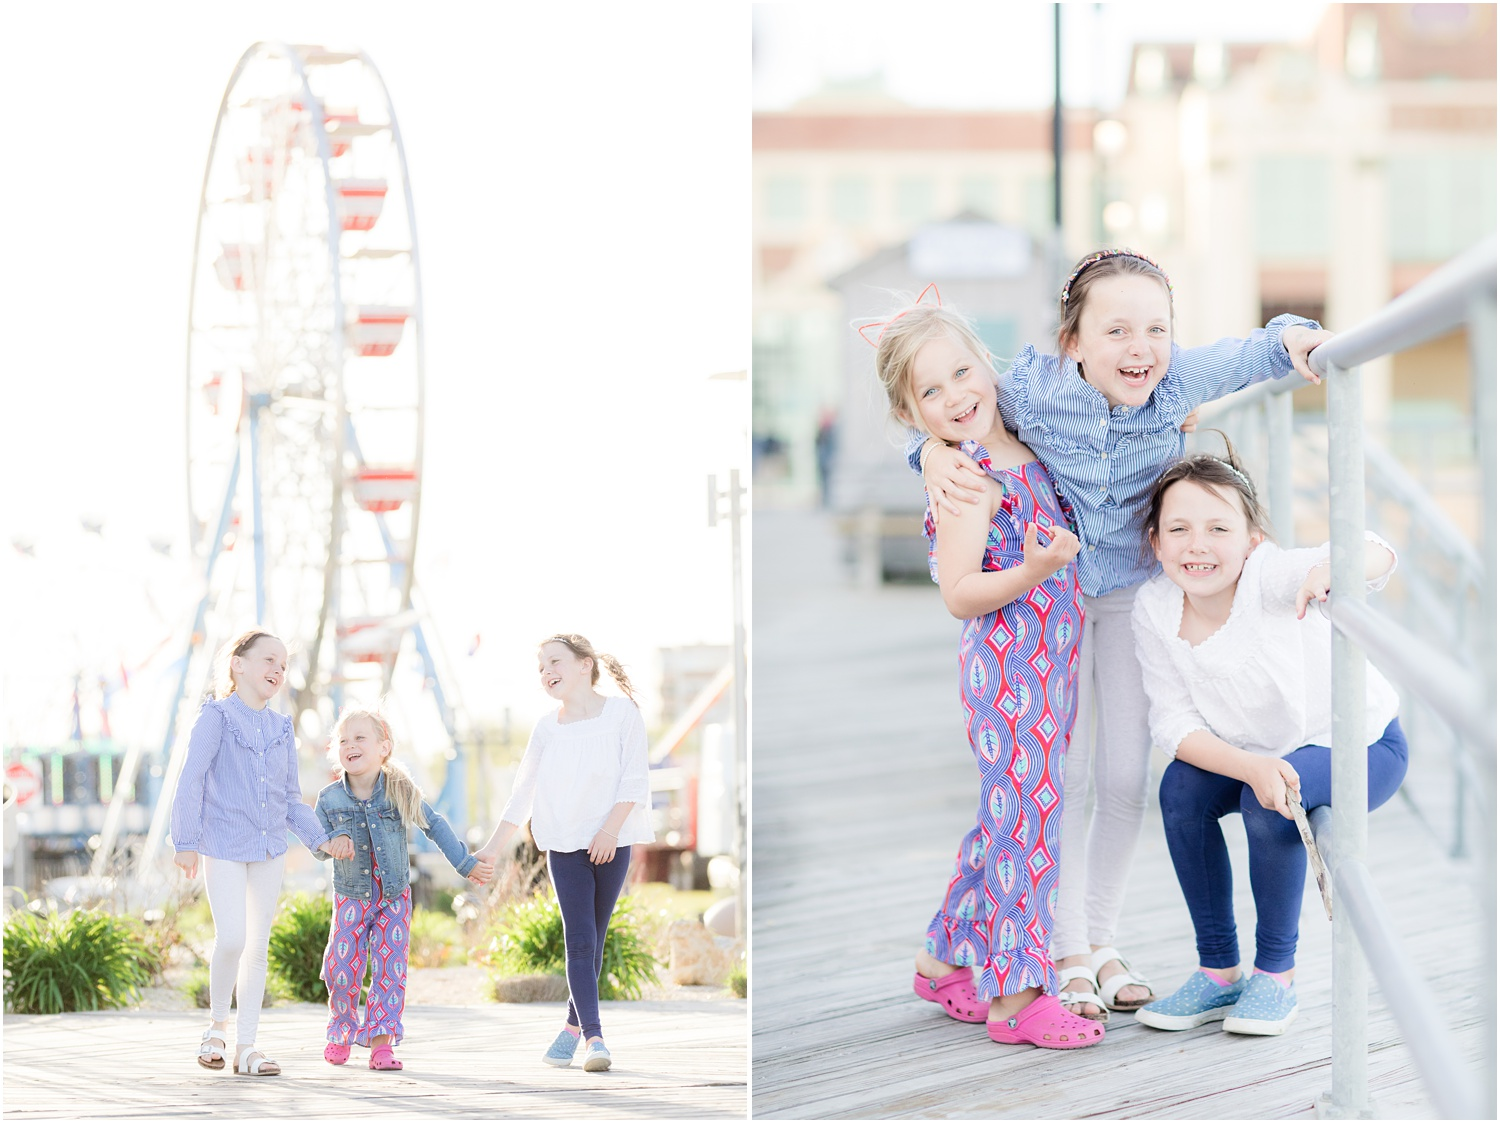 fun colorful photos of 3 sisters on the boardwalk in Asbury Park.